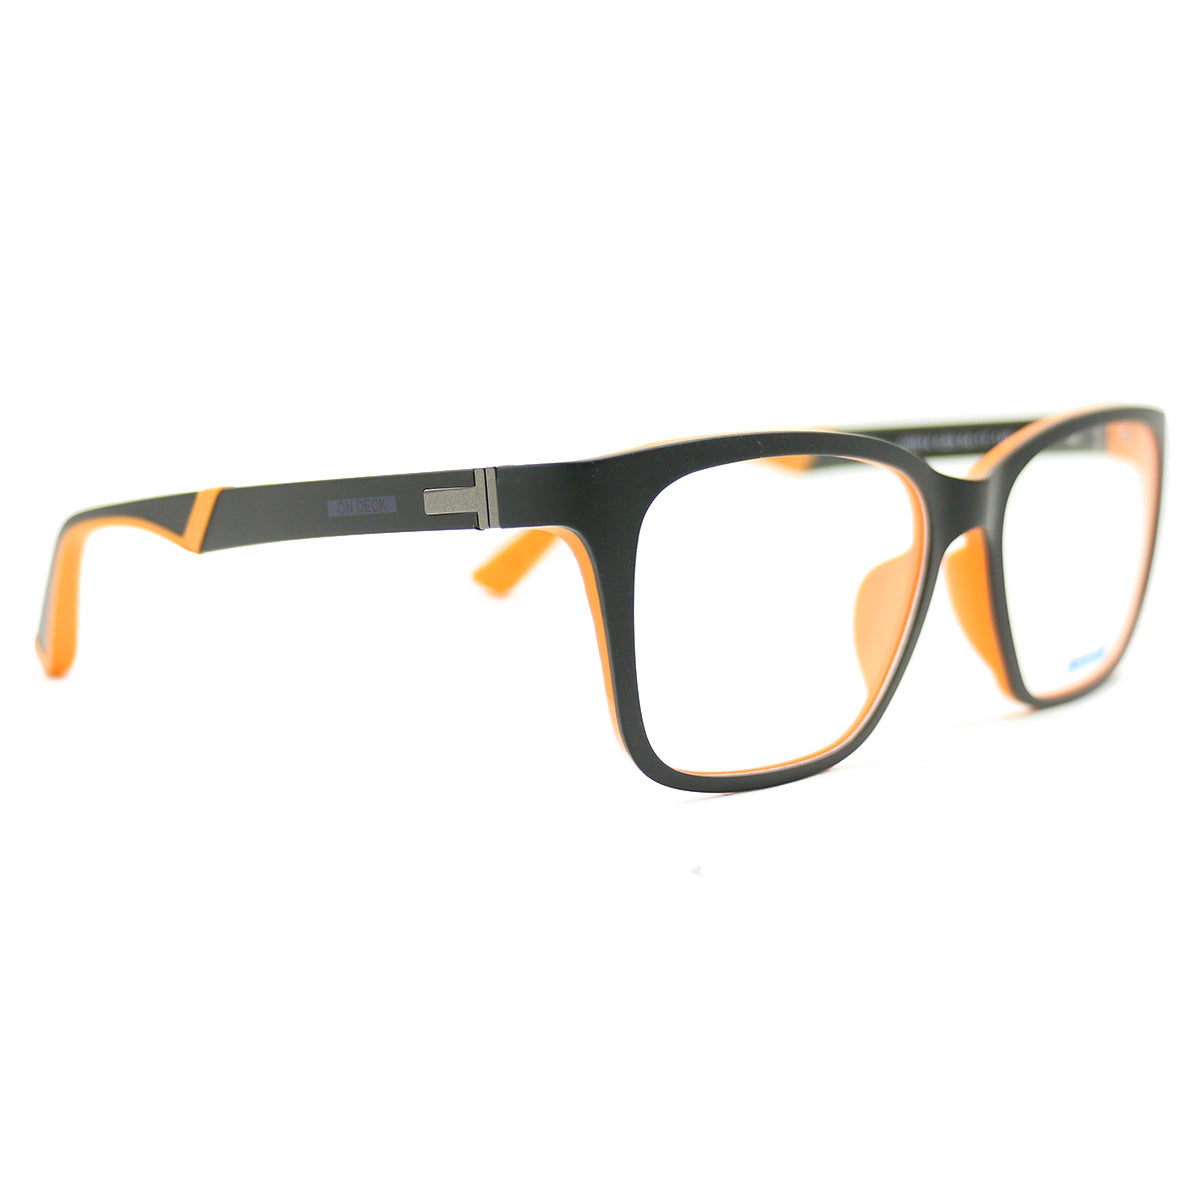 New On Deck Eyeglasses OD014 Ultem Black/Orange 54 17 140 without case